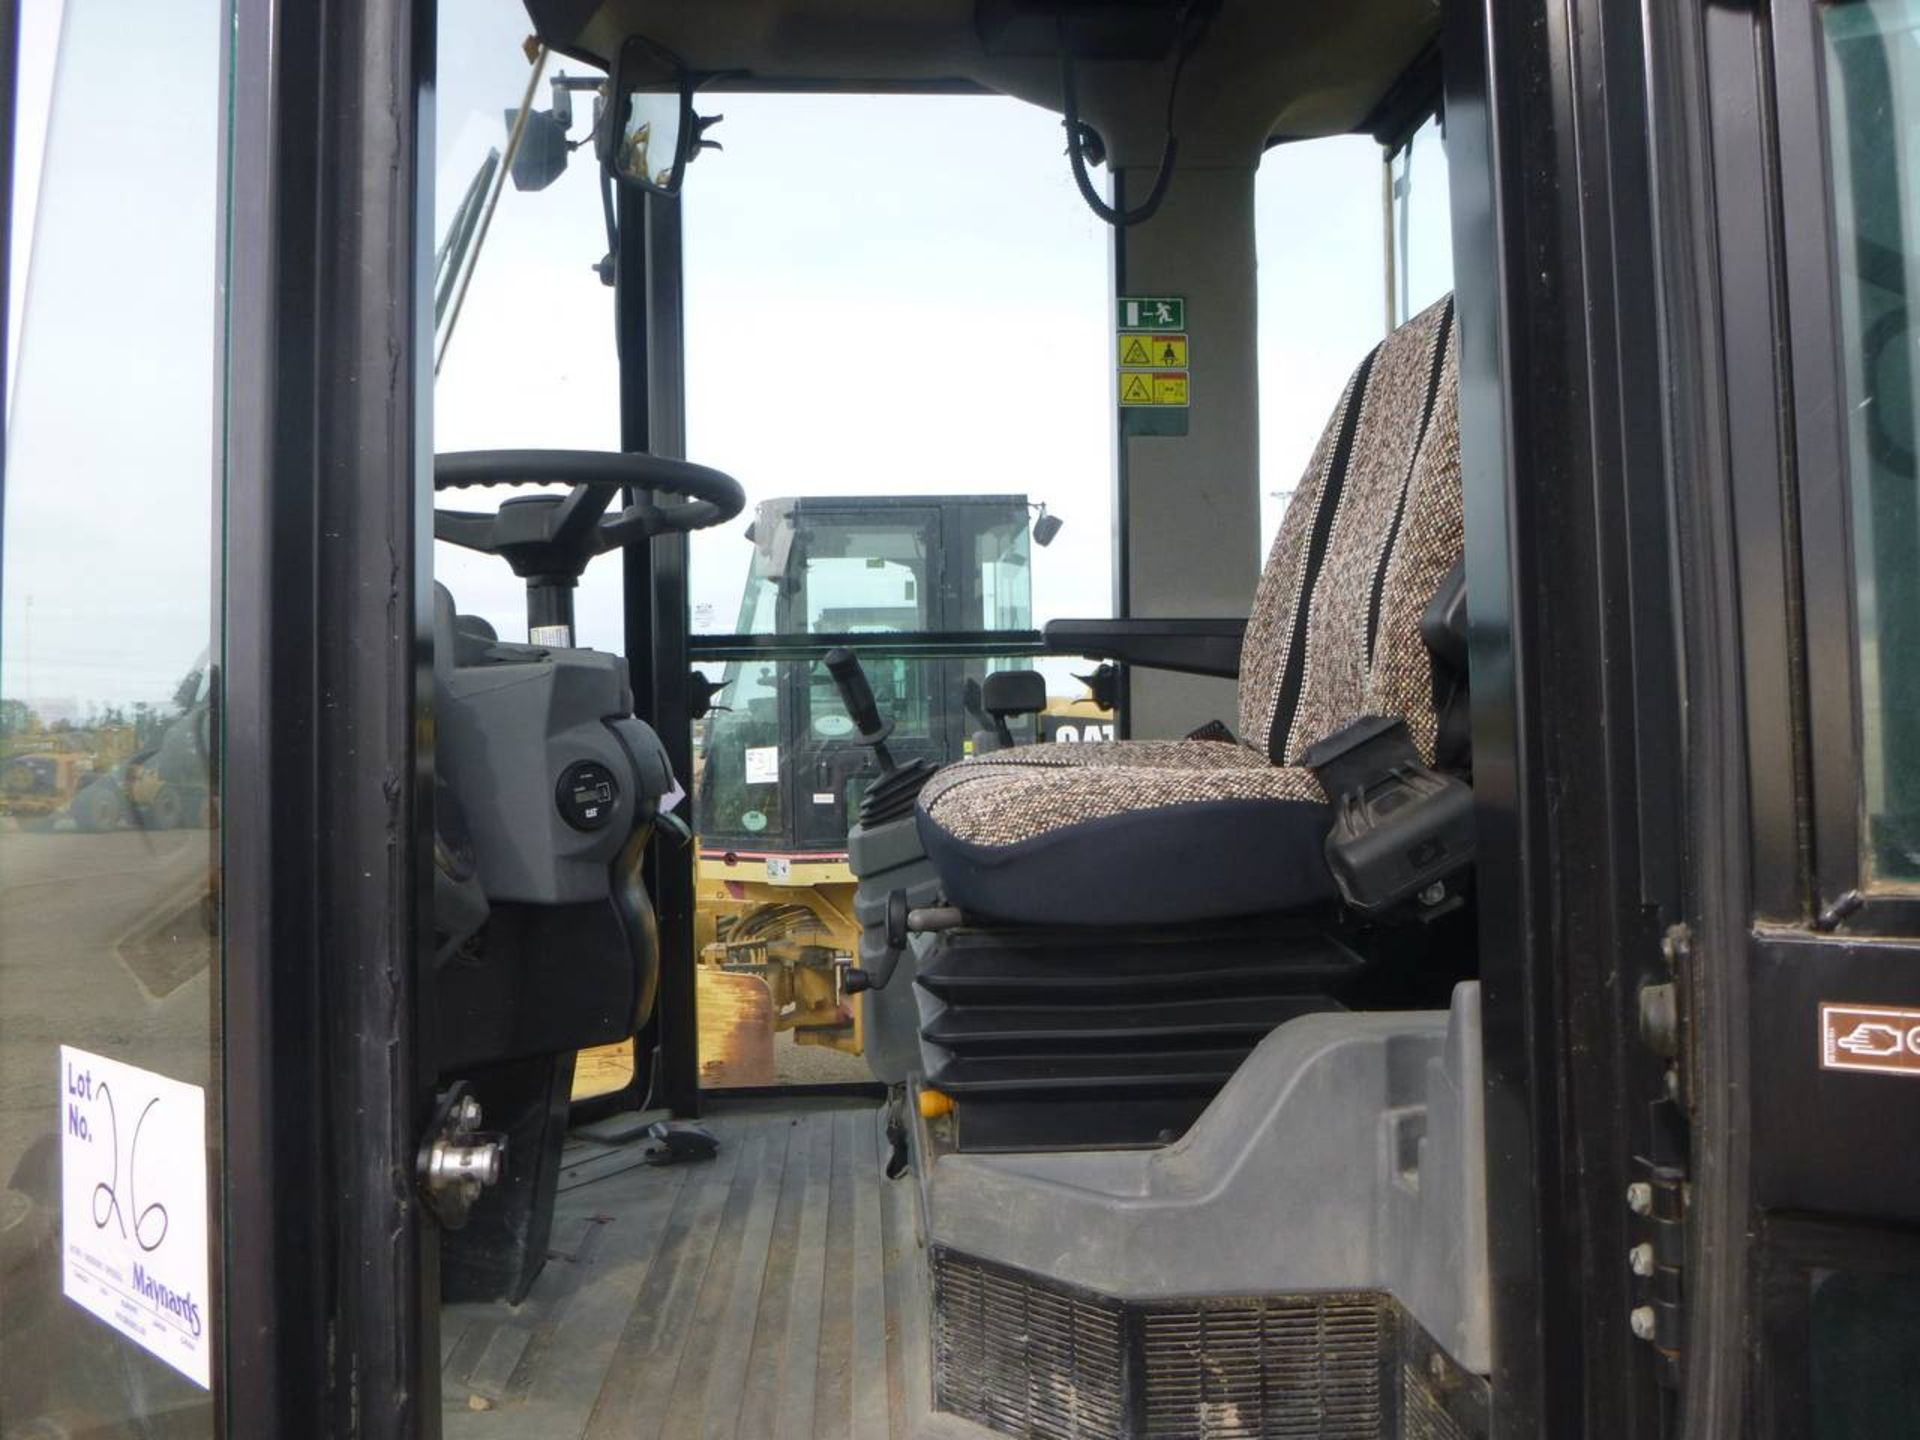 2009 Caterpillar CP56 Compactor - Image 7 of 9